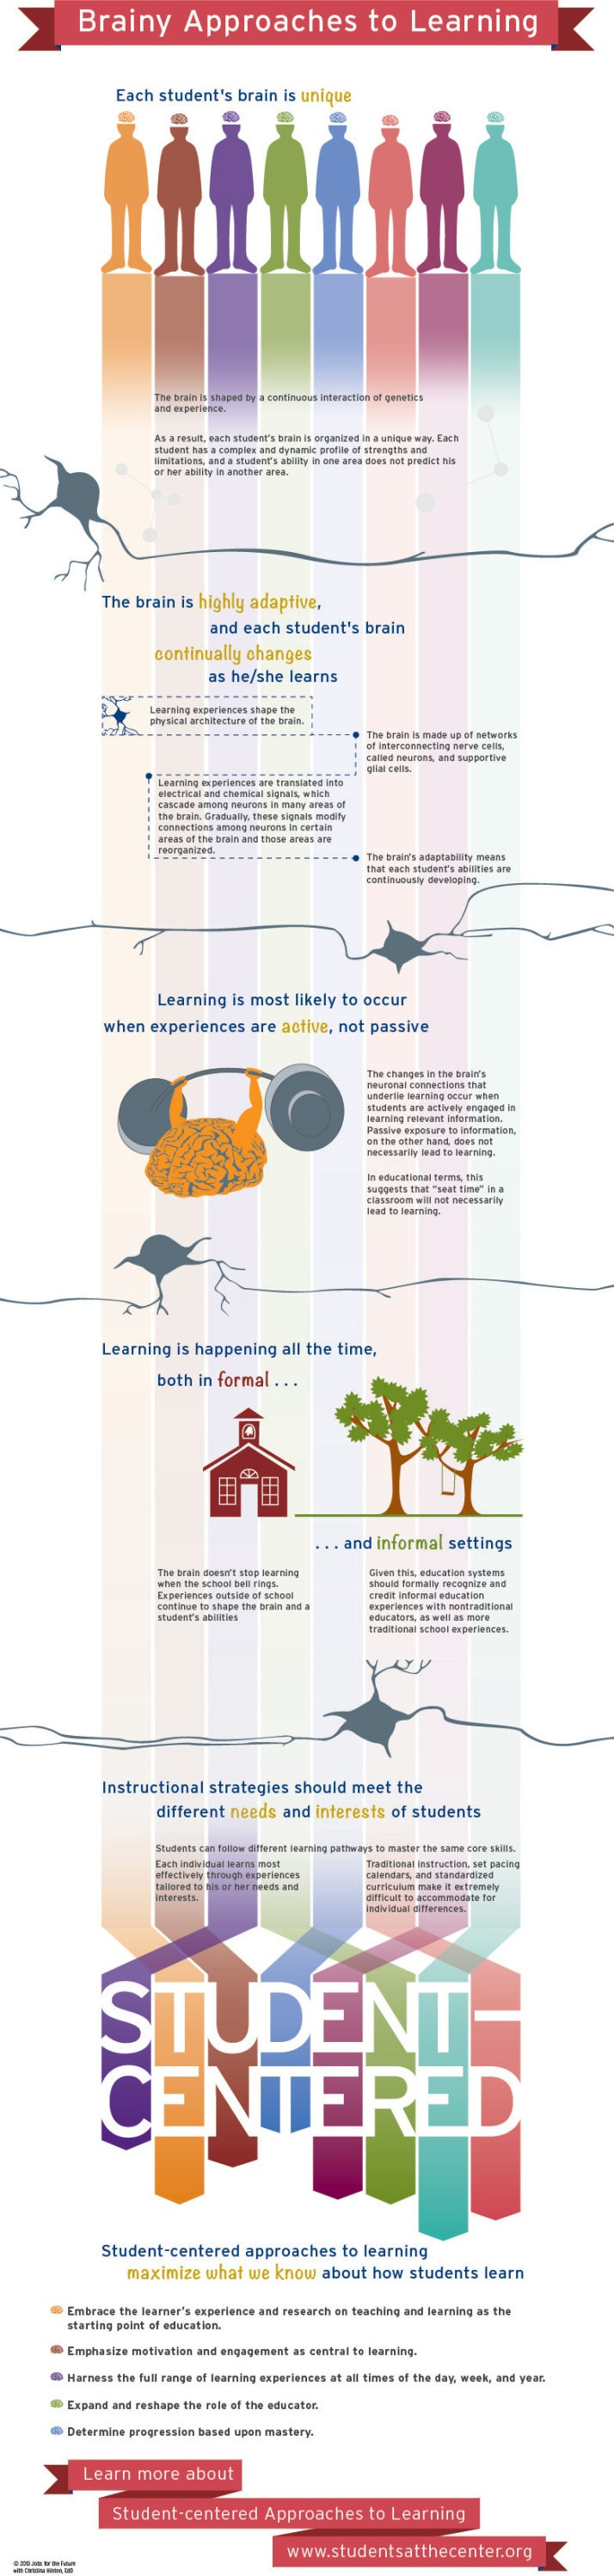 learner centered pedagocical approach to learning Needless to say, the pedagogical style required to enable active learning is  different  active and student-centred learning does not mean that the teacher  can.